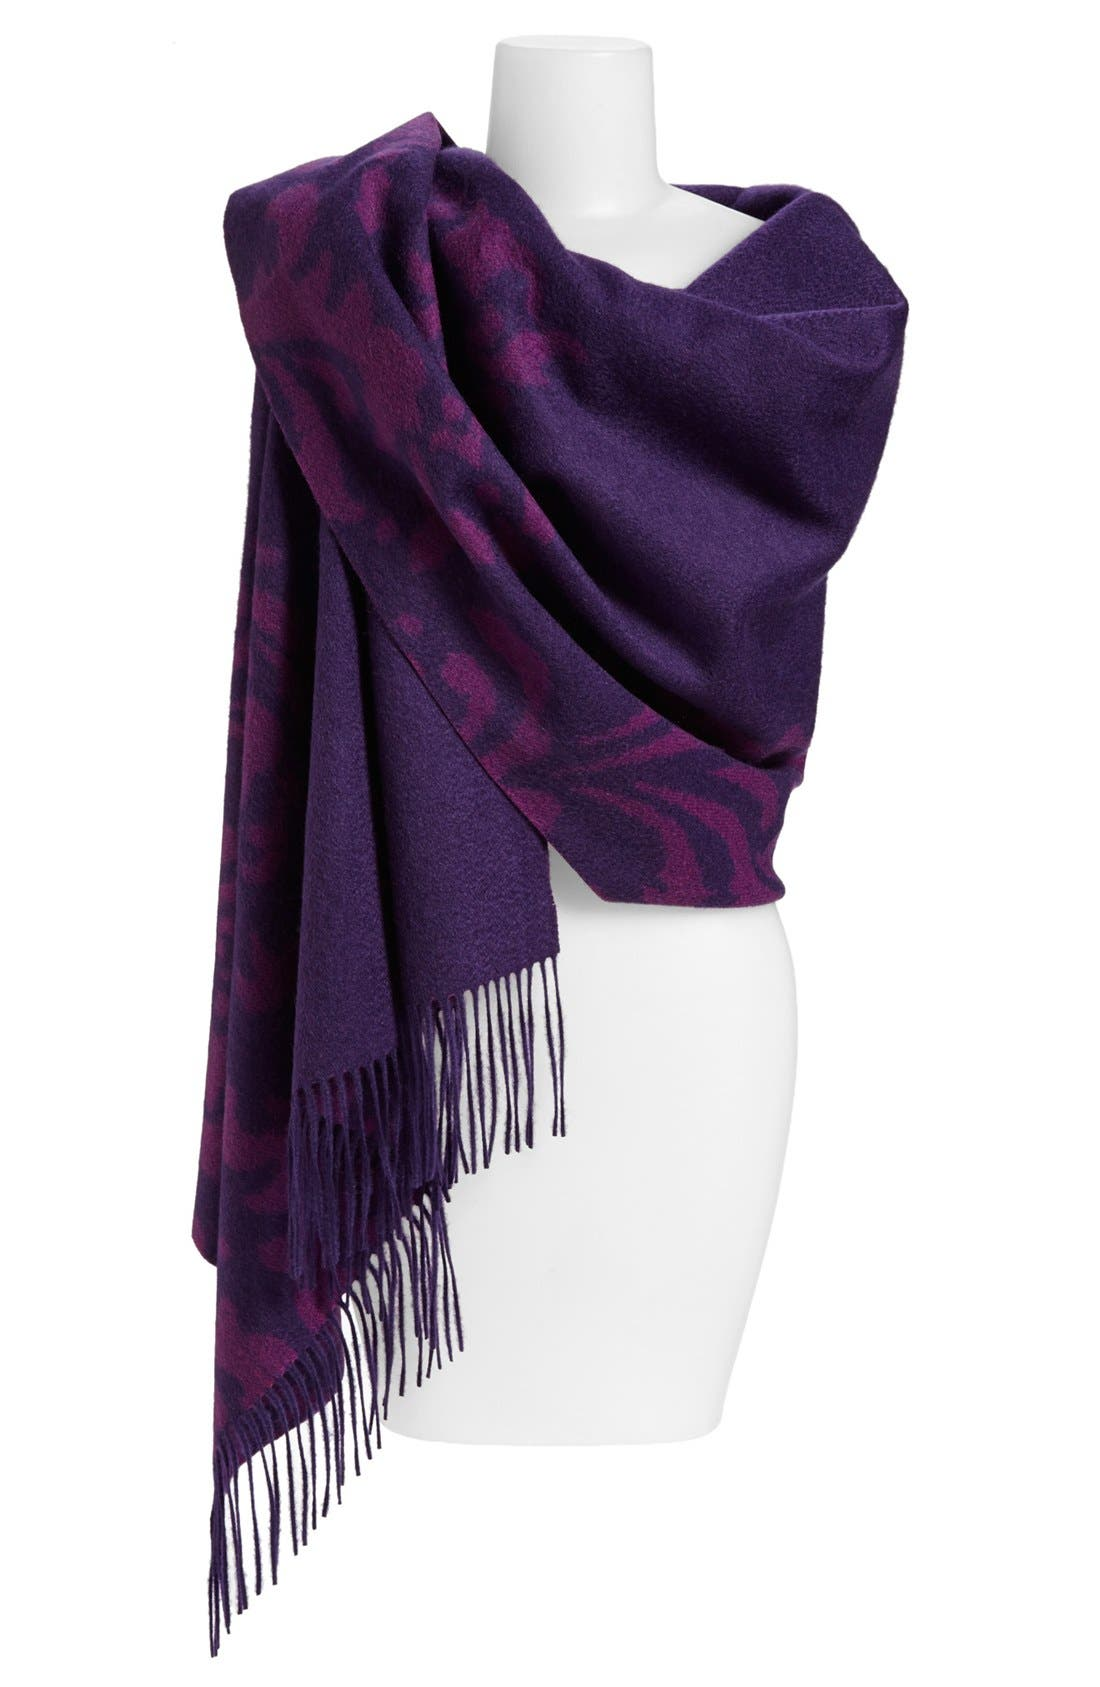 Main Image - Nordstrom 'Scroll' Woven Cashmere Wrap